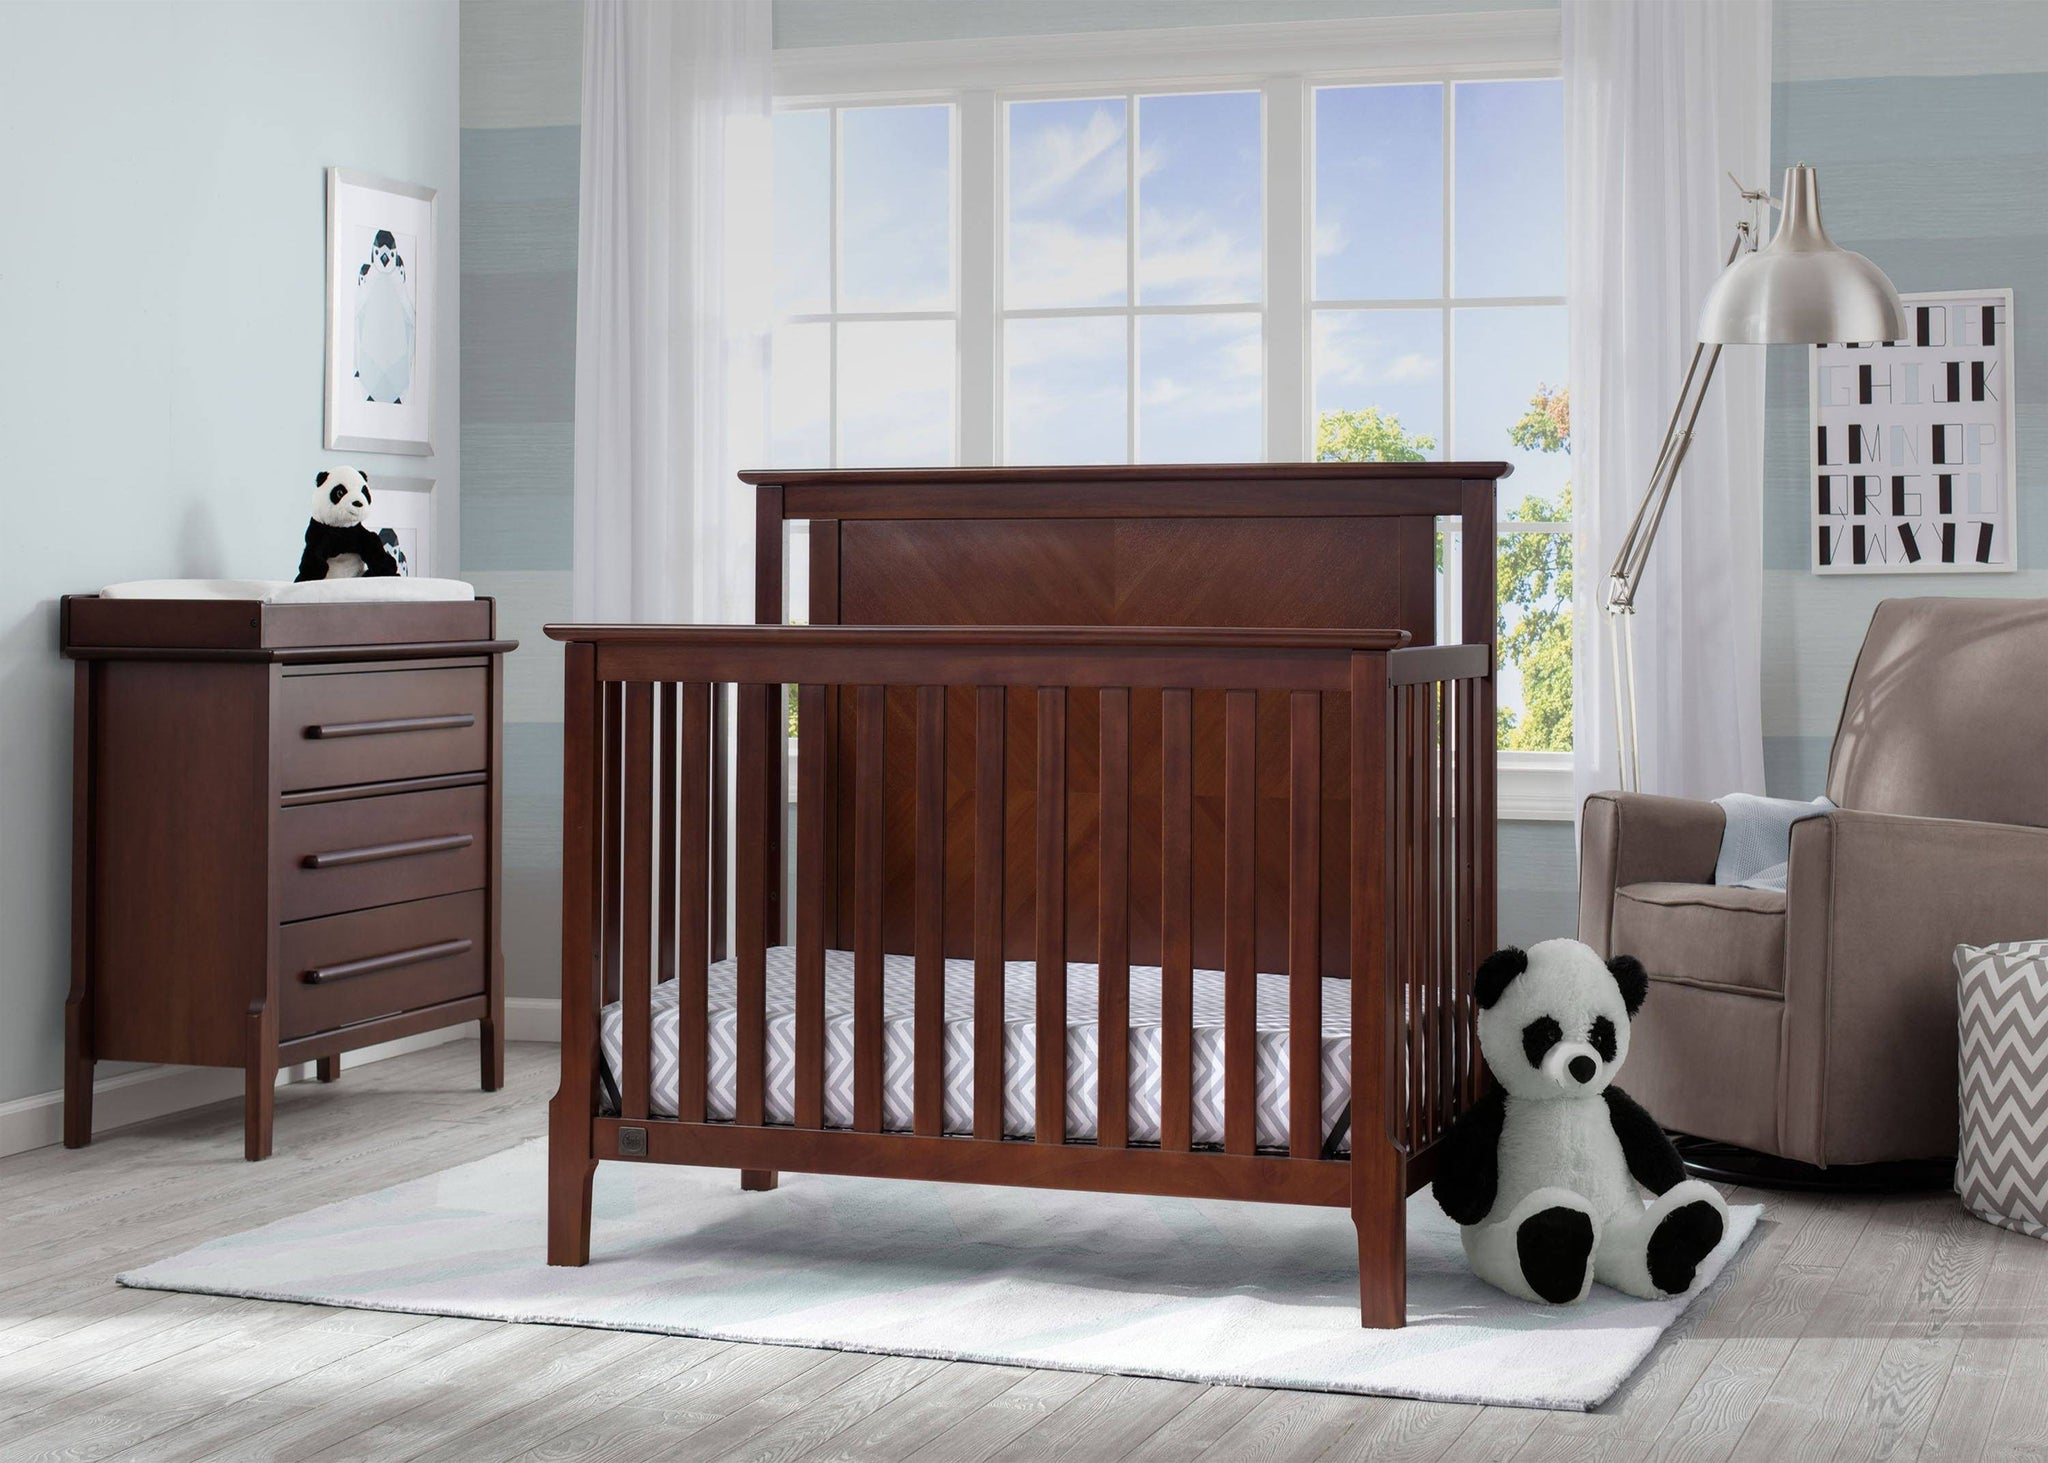 Serta Mid-Century Modern Lifestyle 4-in-1 Crib Walnut Espresso (1324) Room View c1c